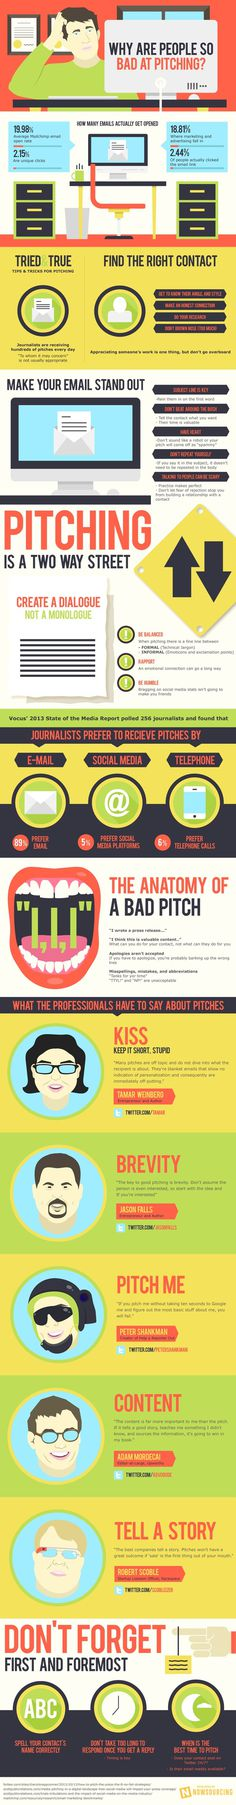 Why are people so bad at pitching to the media?  Learn how to improve your pitching game from this infographic.